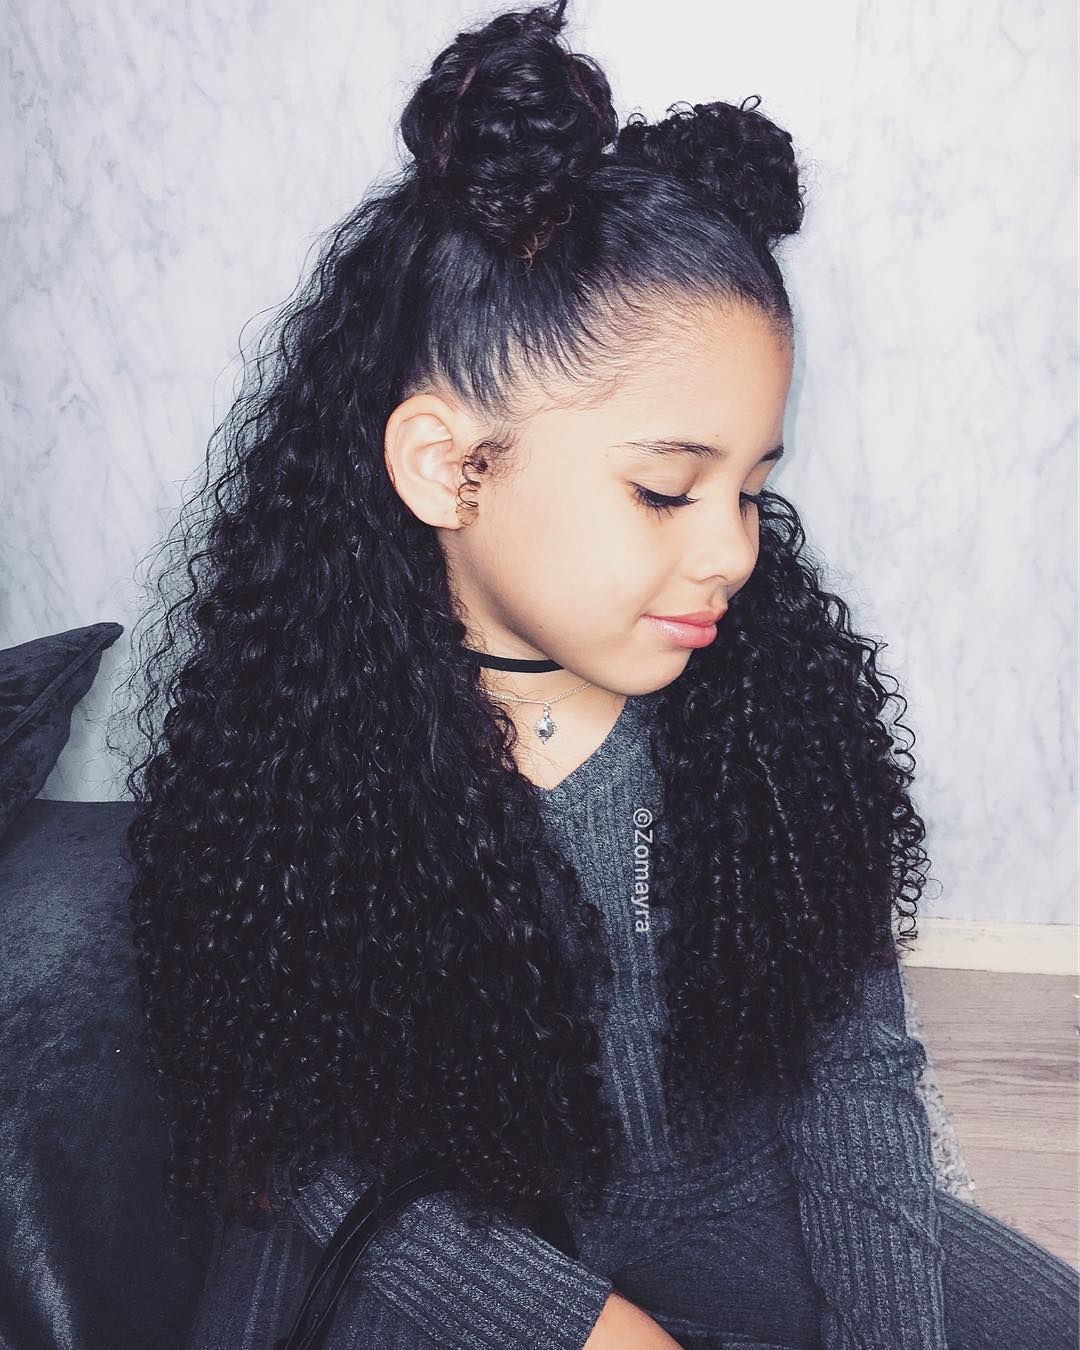 pin by omanee gipson on future in 2019 | mixed curly hair